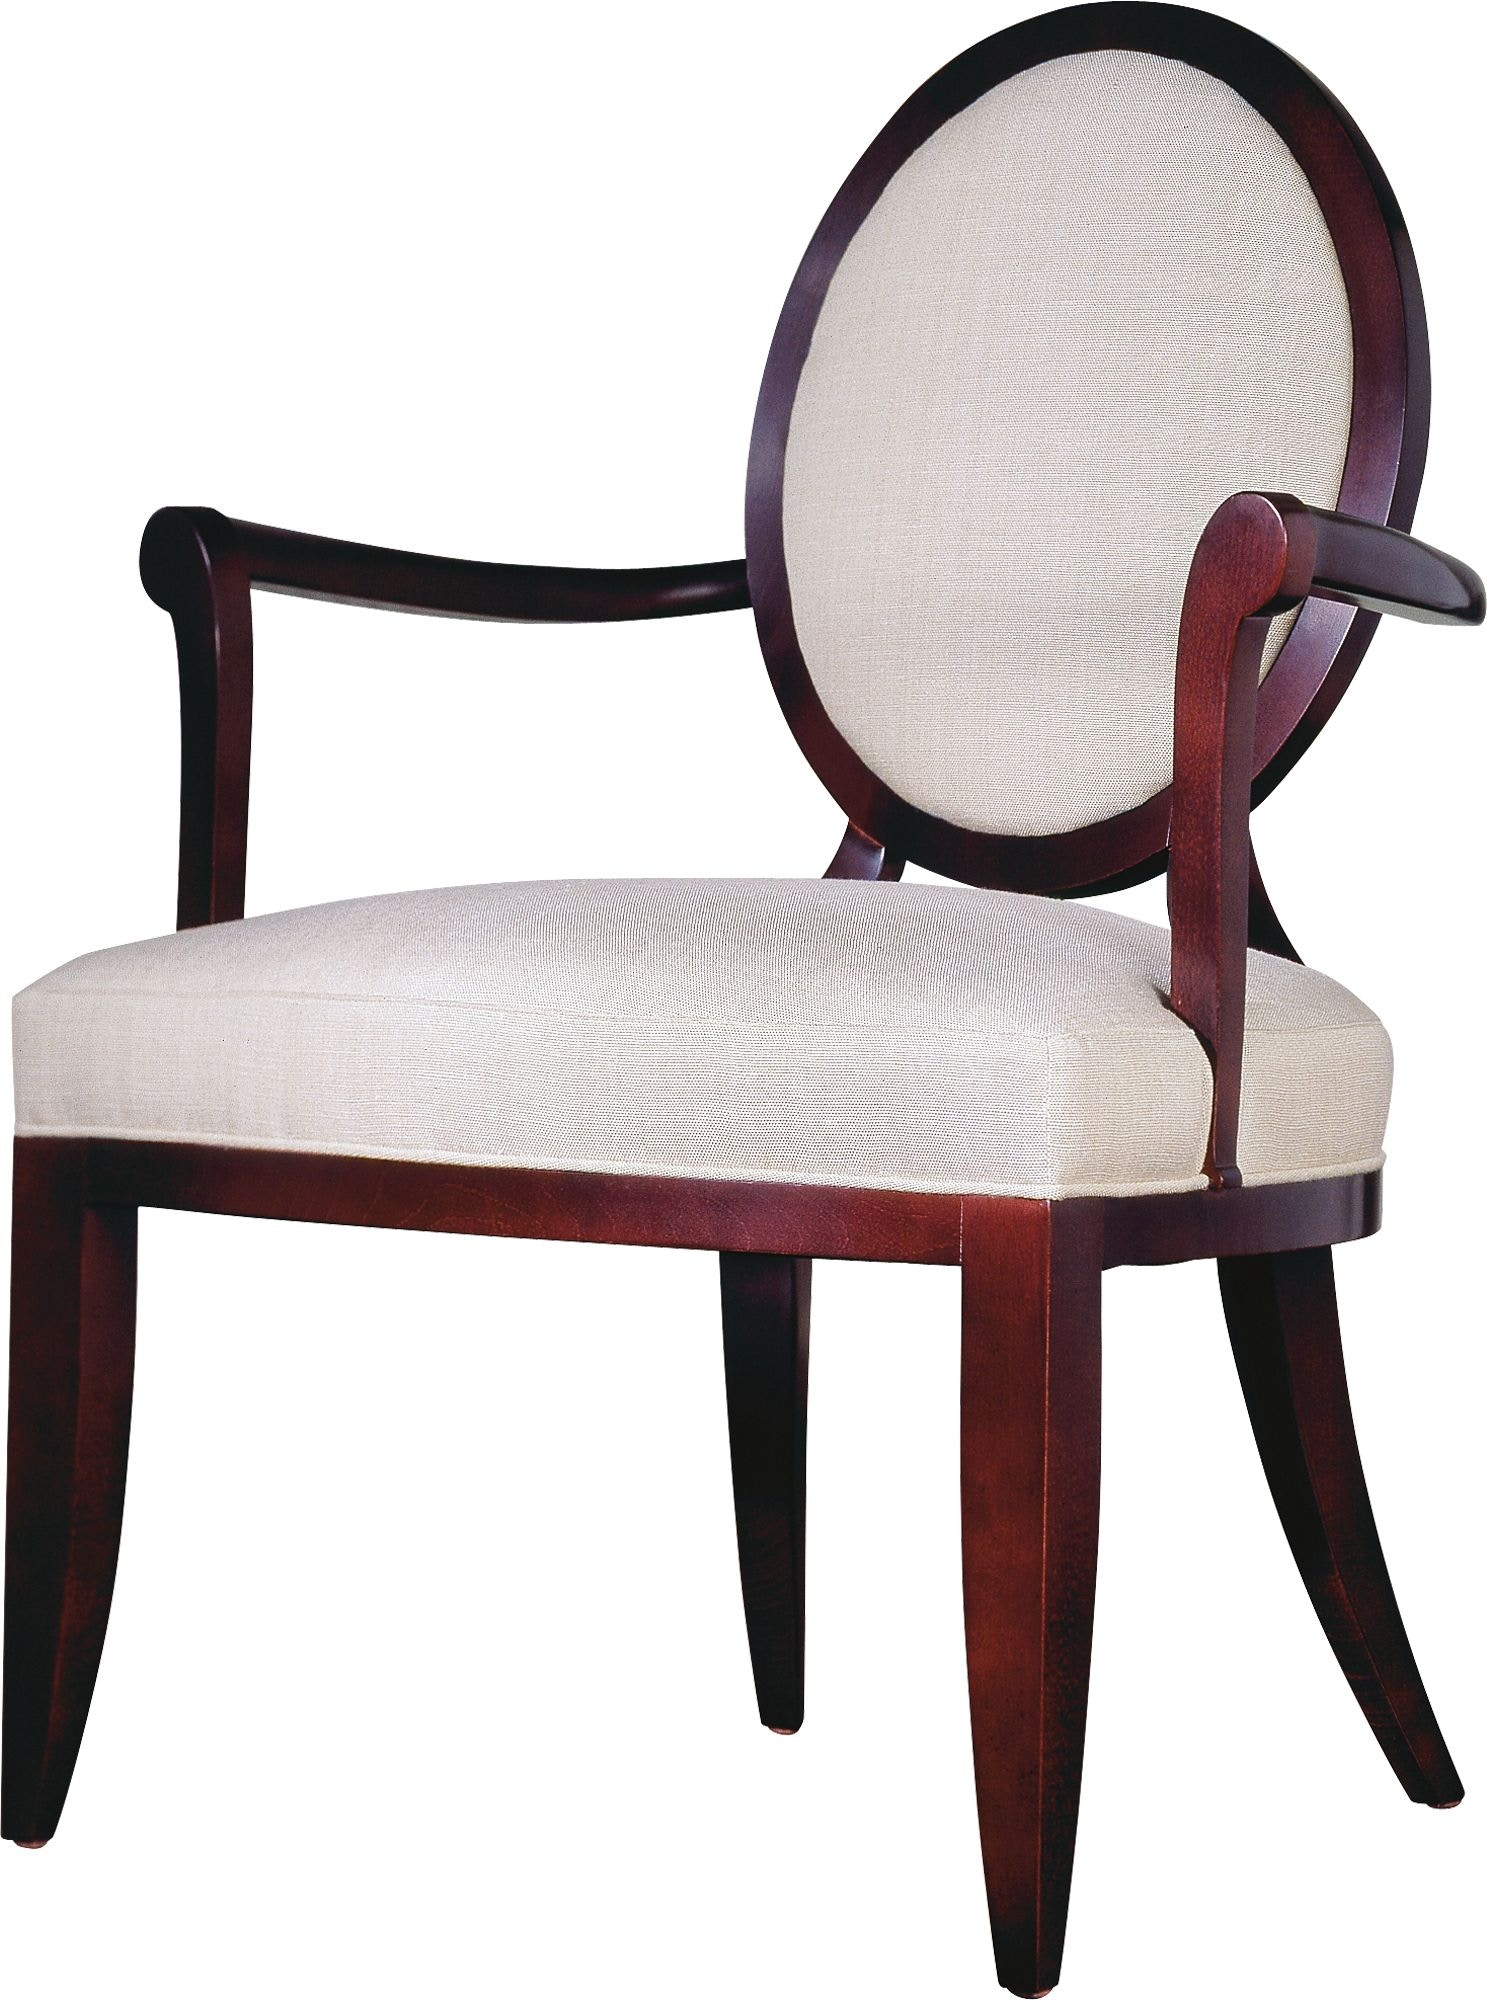 baker furniture 3441 dining room barbara barry oval x back dining baker furniture barbara barry oval x back dining arm chair 3441